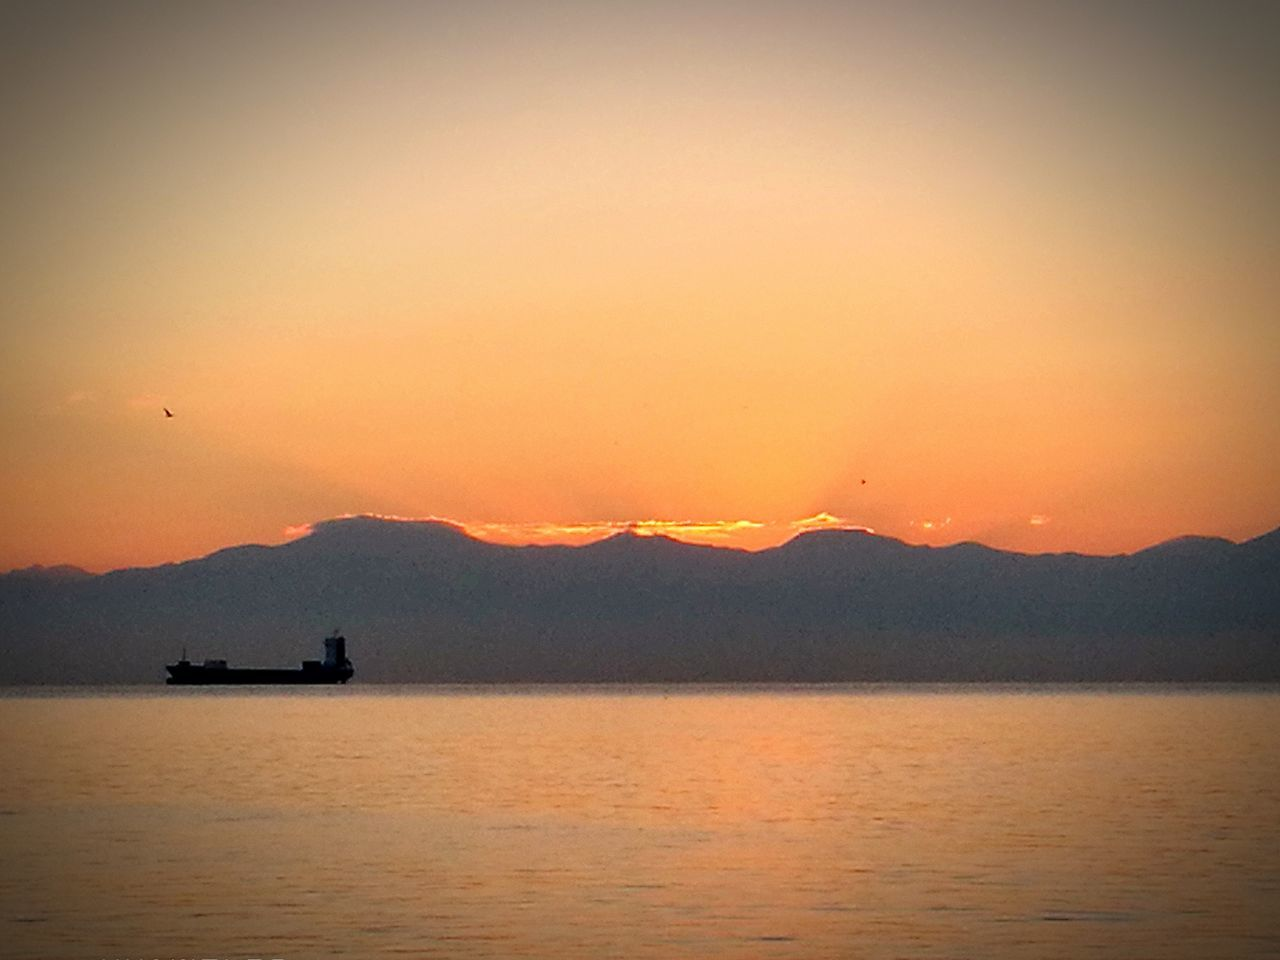 sunset, nature, beauty in nature, scenics, water, mountain, tranquility, silhouette, transportation, orange color, nautical vessel, waterfront, tranquil scene, mode of transport, sea, outdoors, no people, sky, mountain range, sailing, day, drilling rig, oil pump